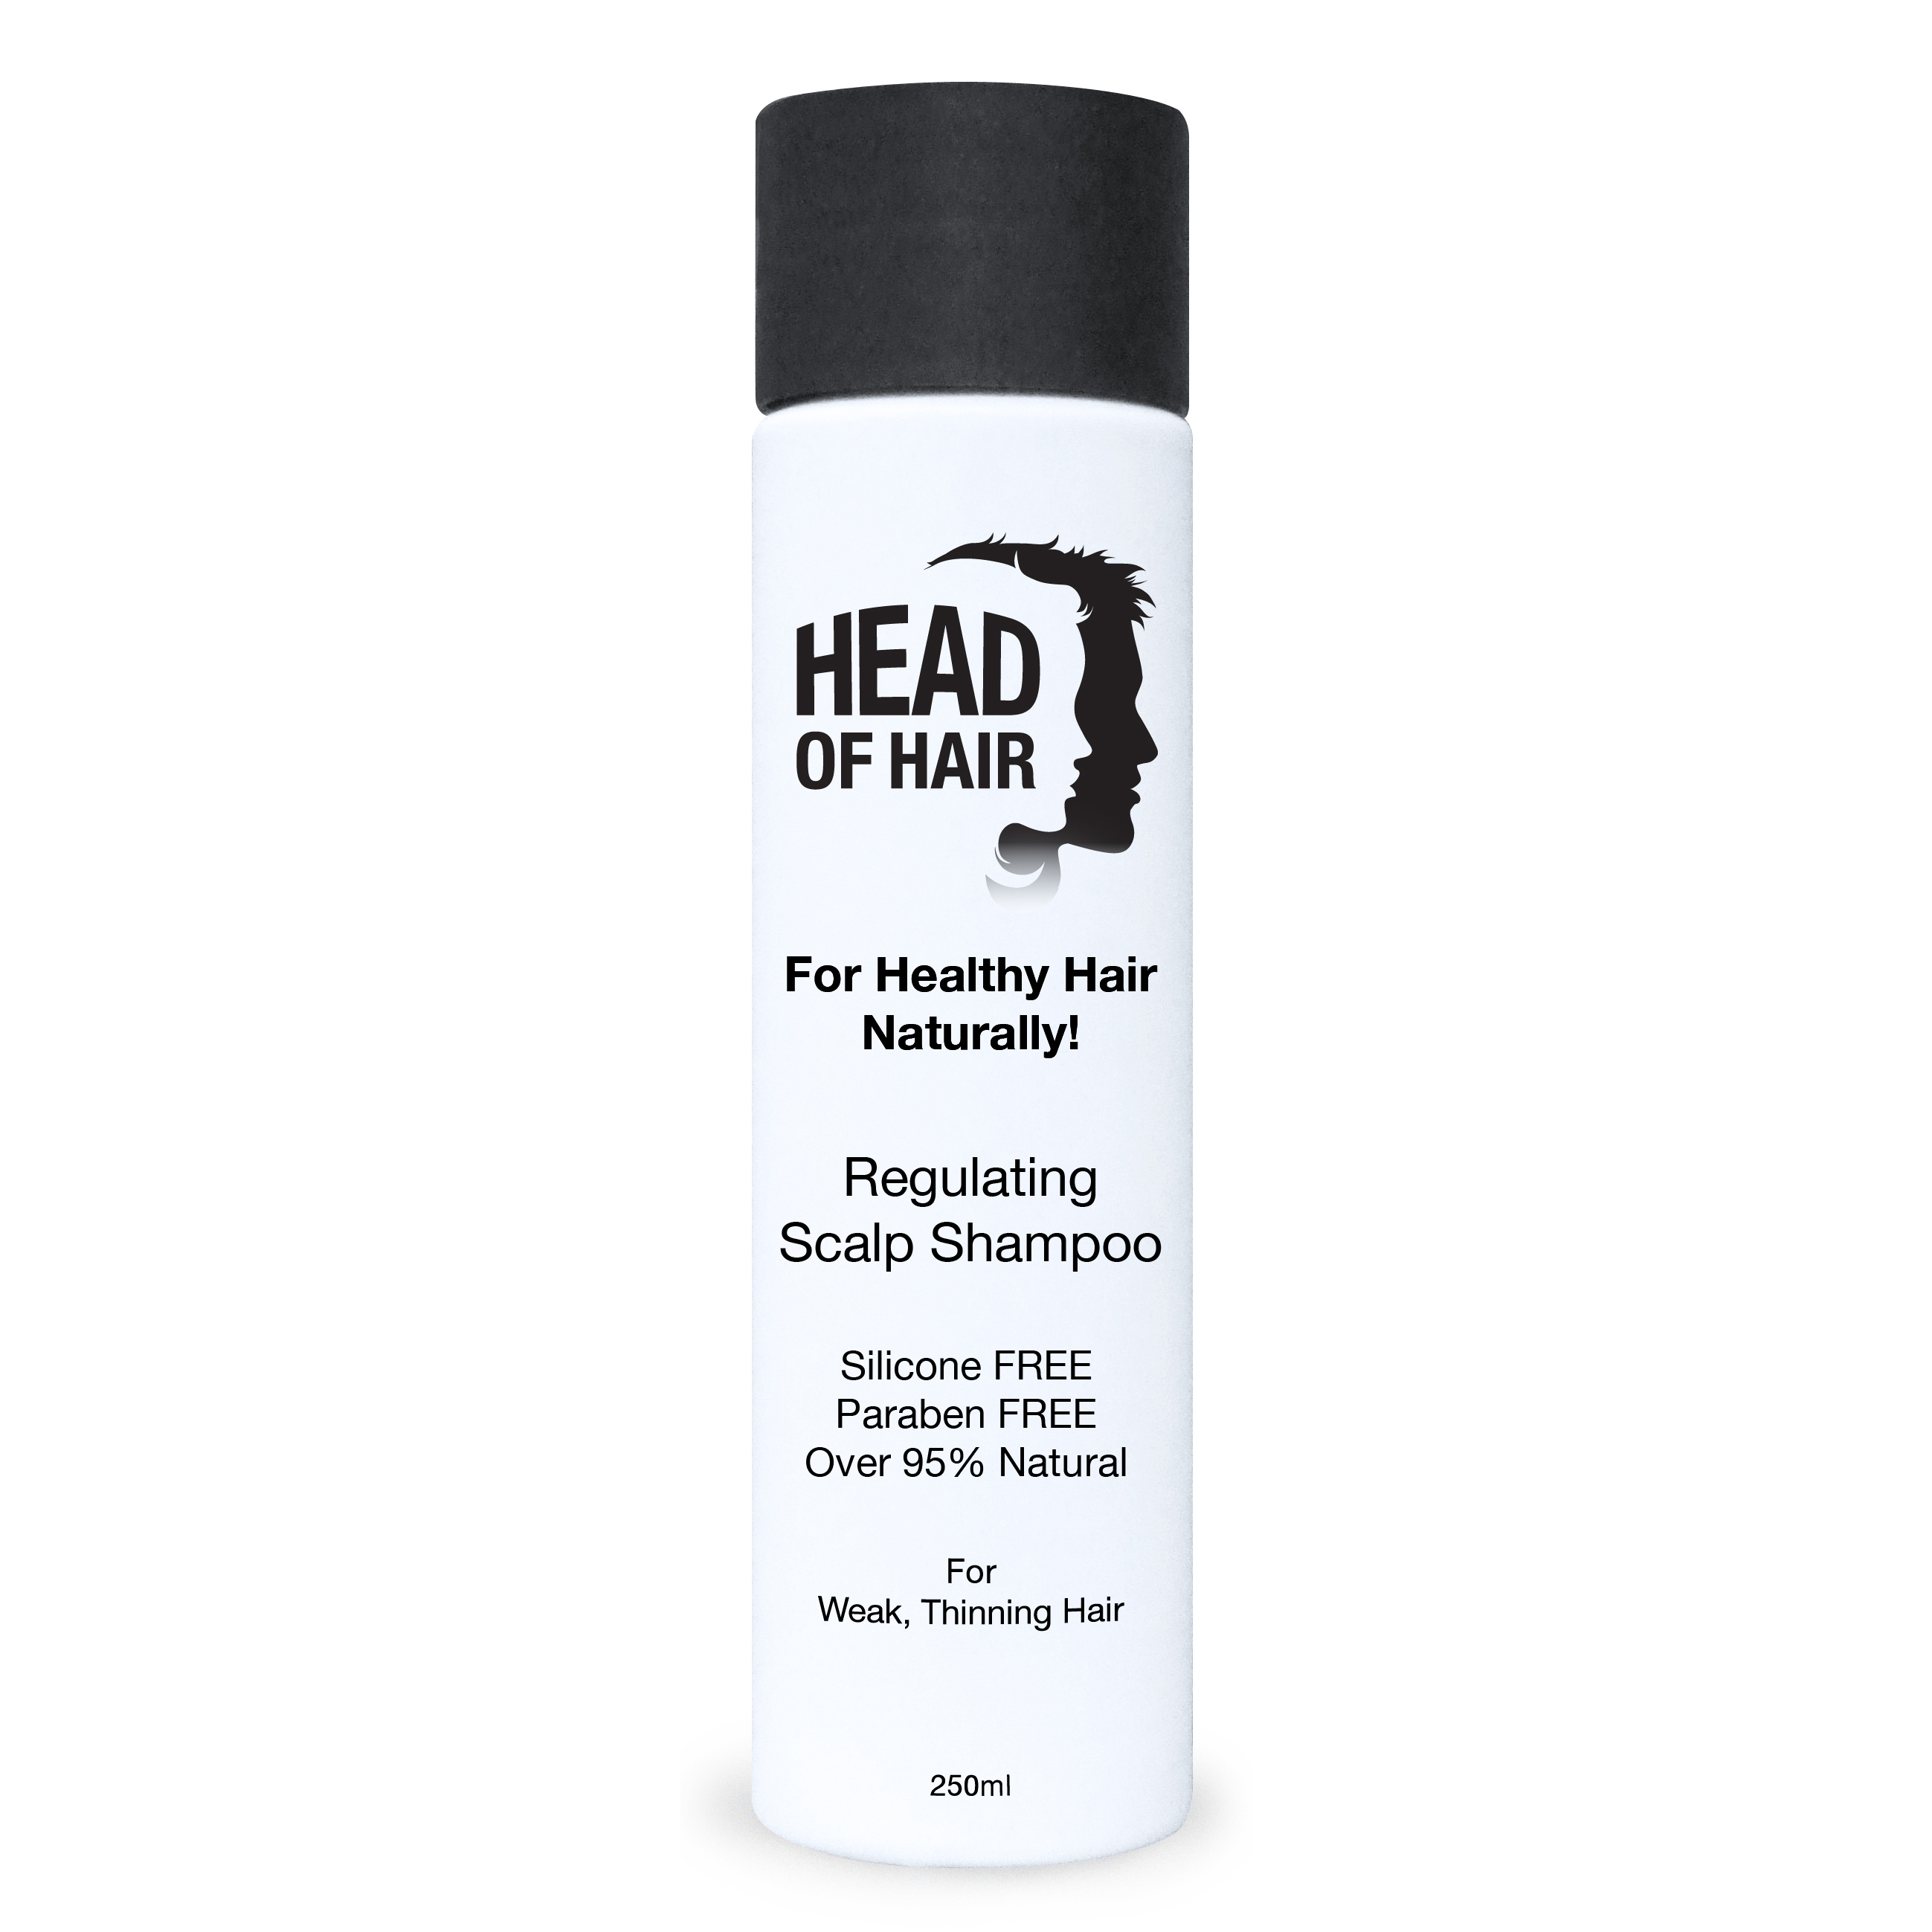 Regulating Scalp Shampoo